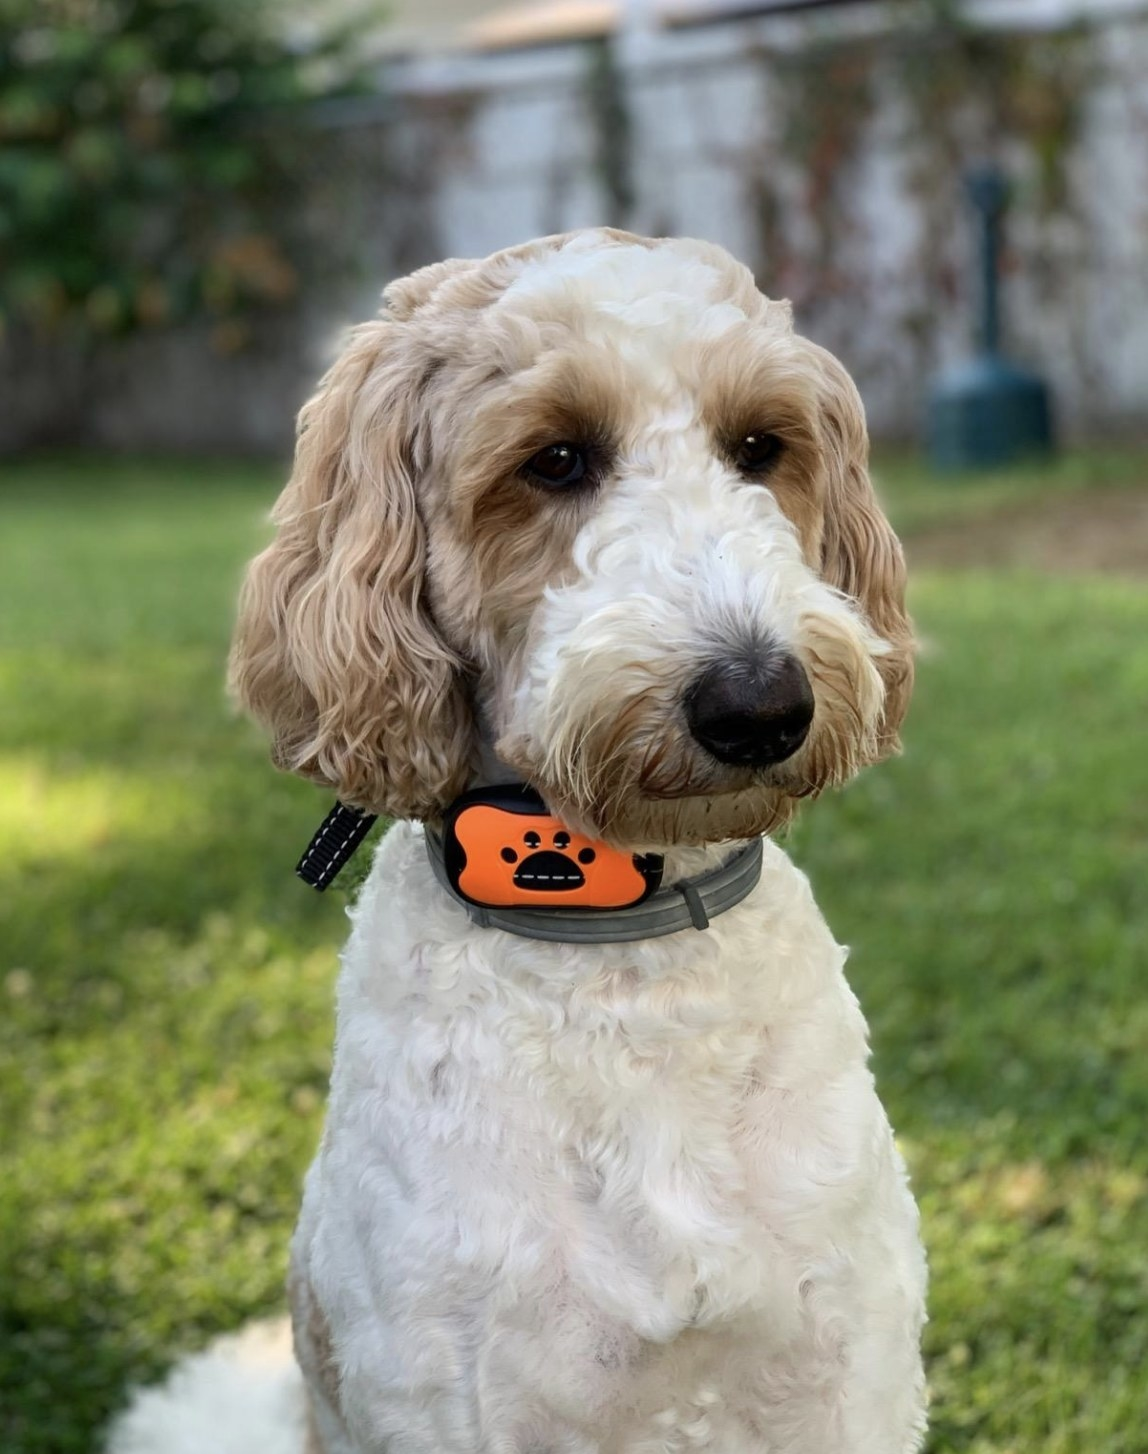 a reviewer's dog wearing the collar